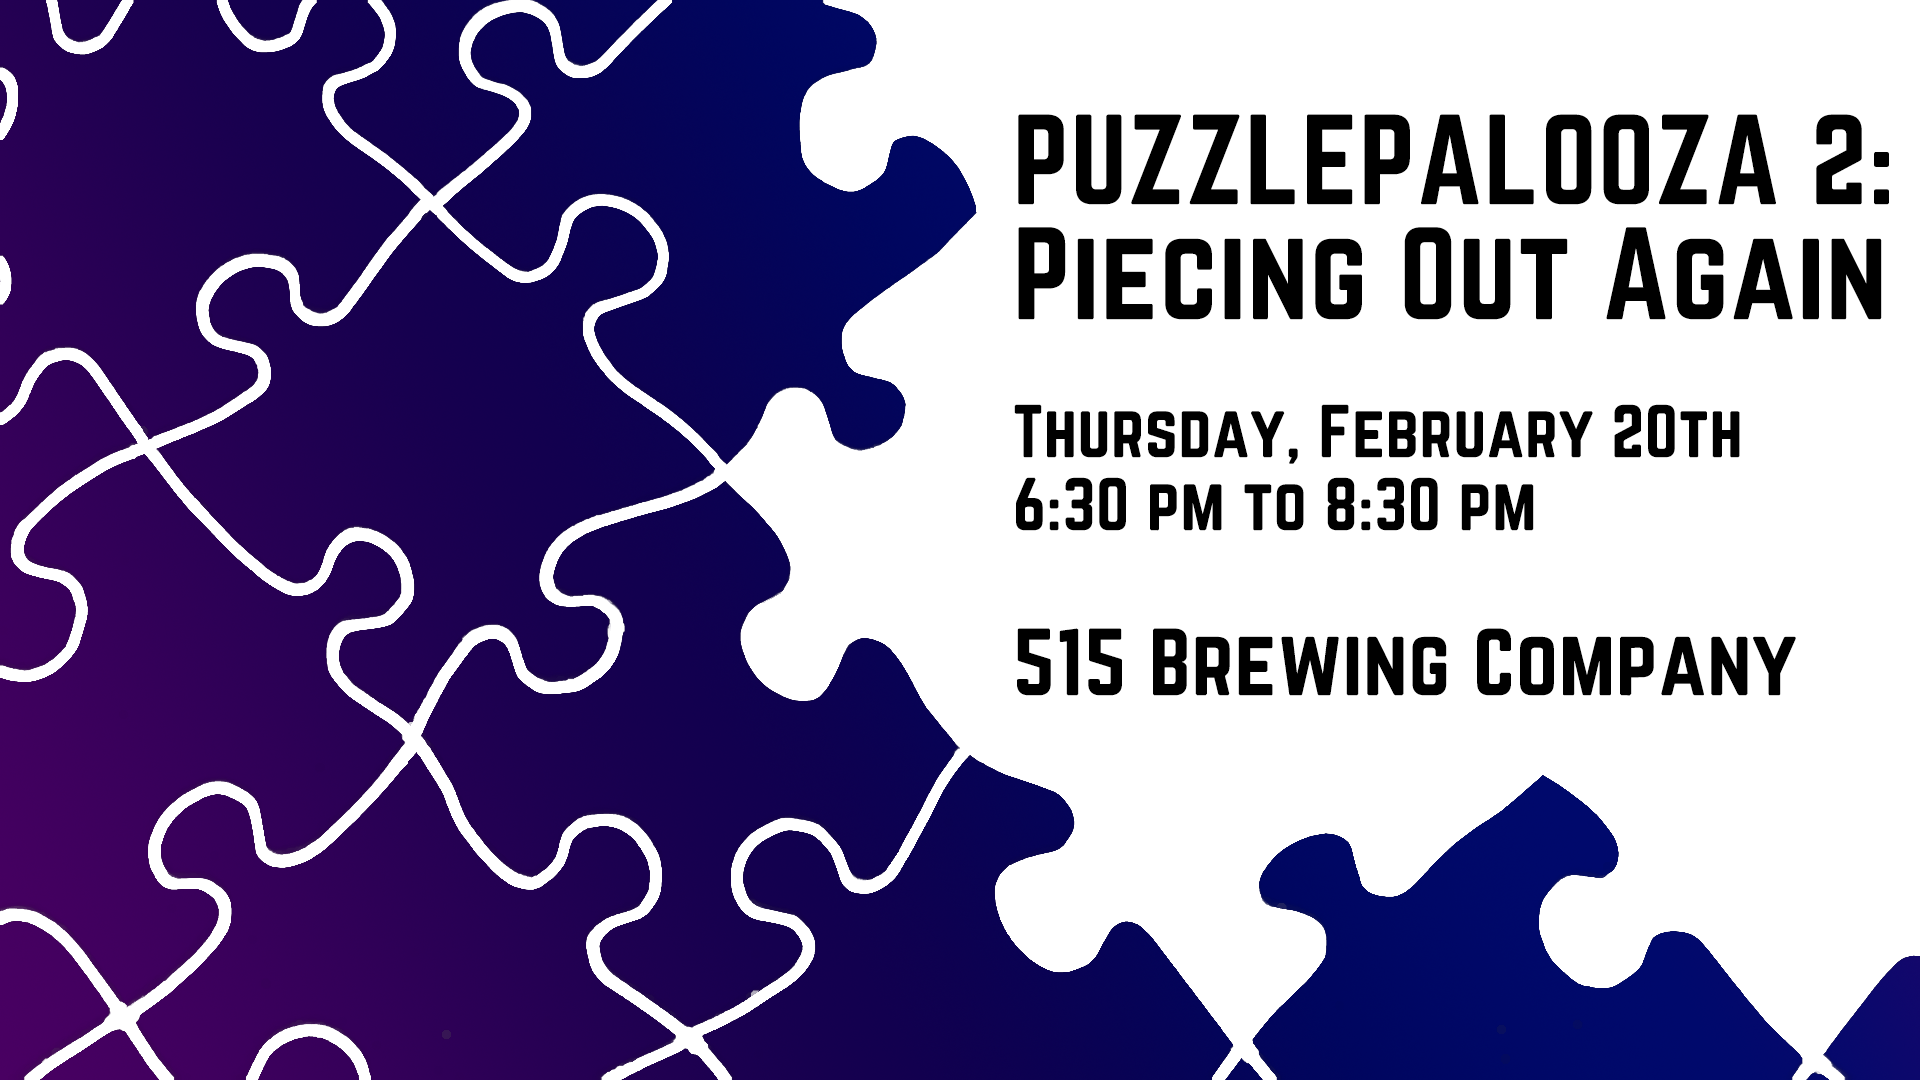 Puzzlepalooza 2: Piecing Out Again Jigsaw Puzzle Competition